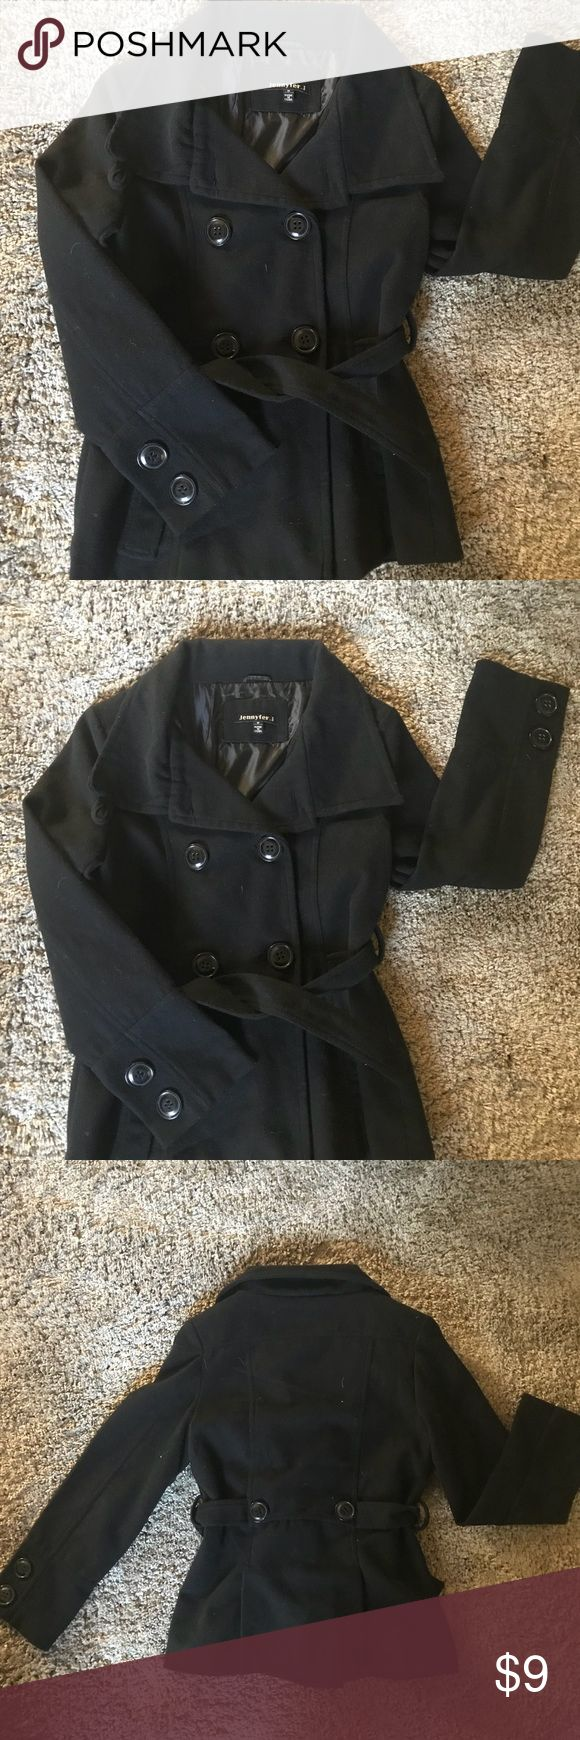 Burlington Coat Factory Dress Coat Waist length black coat from Burlington Coat Factory.   Worn maybe twice  No rips or stains  There are little coat hairs on it from being next to a furry coat of mine in closet. Easily fixed with a lint roller  Open to offers Jackets & Coats Pea Coats